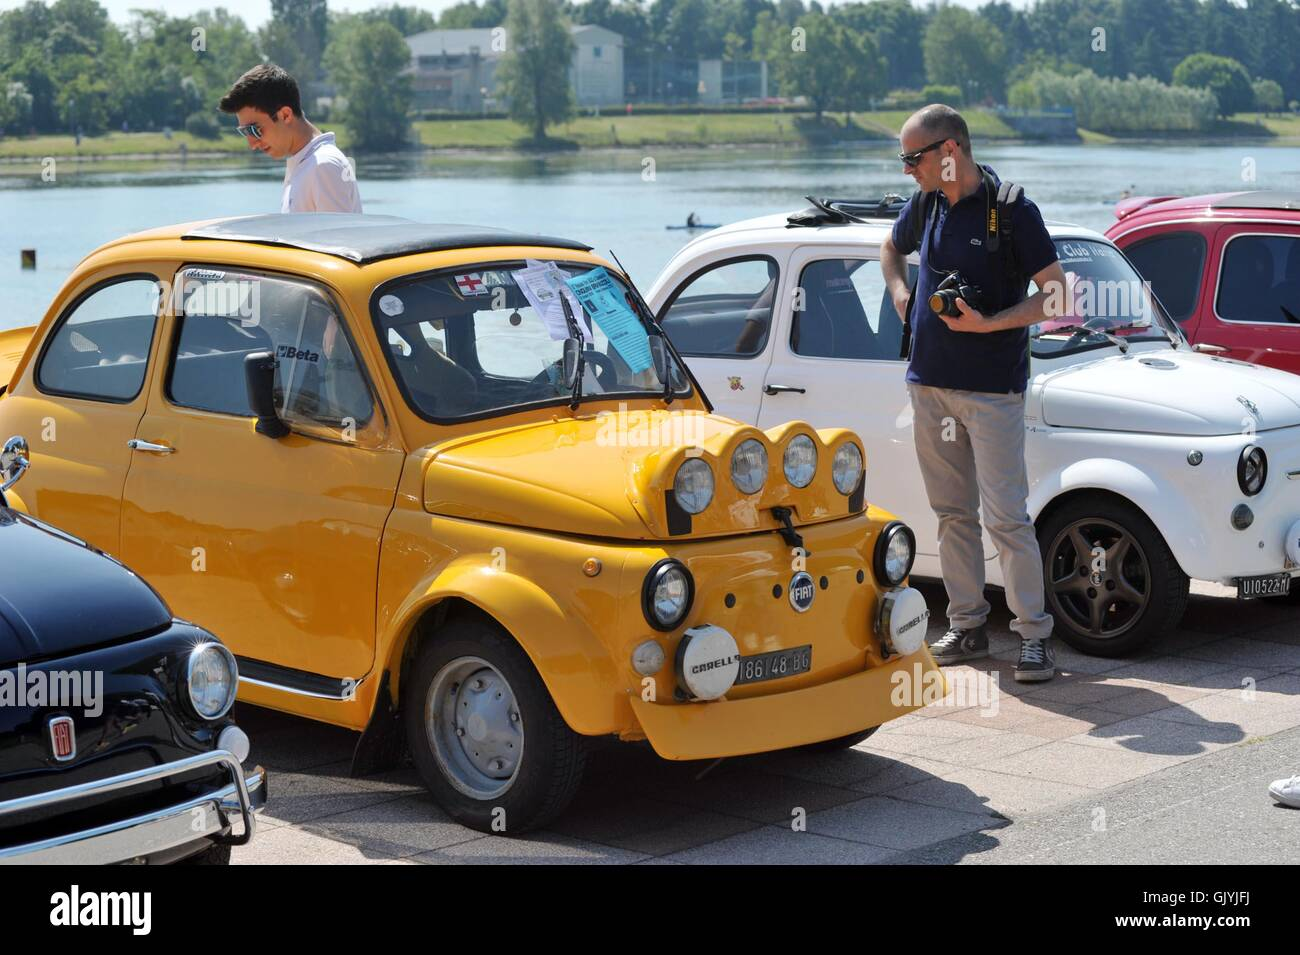 Car Enthusiasts Take Part In The Fiat 500 Rally In Segrate Stock